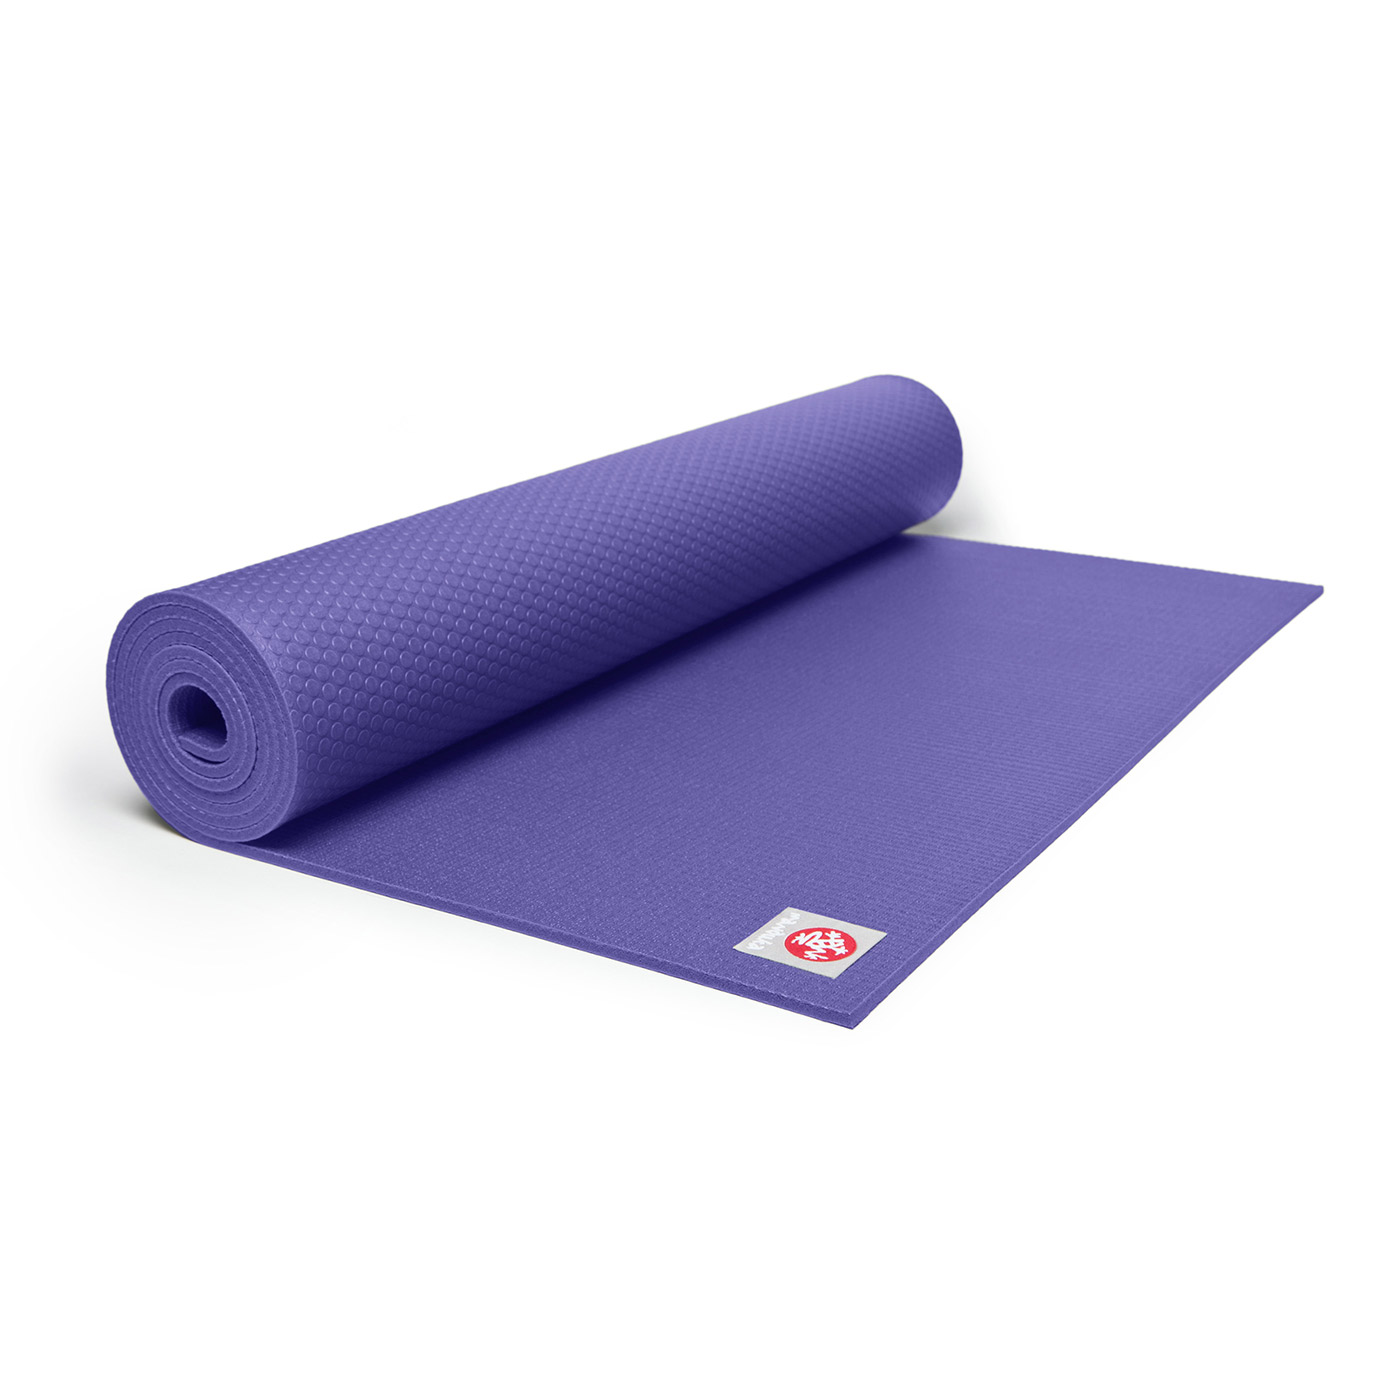 Manduka Prolite Yoga Mat Yoga Apparel Mats At Vickerey